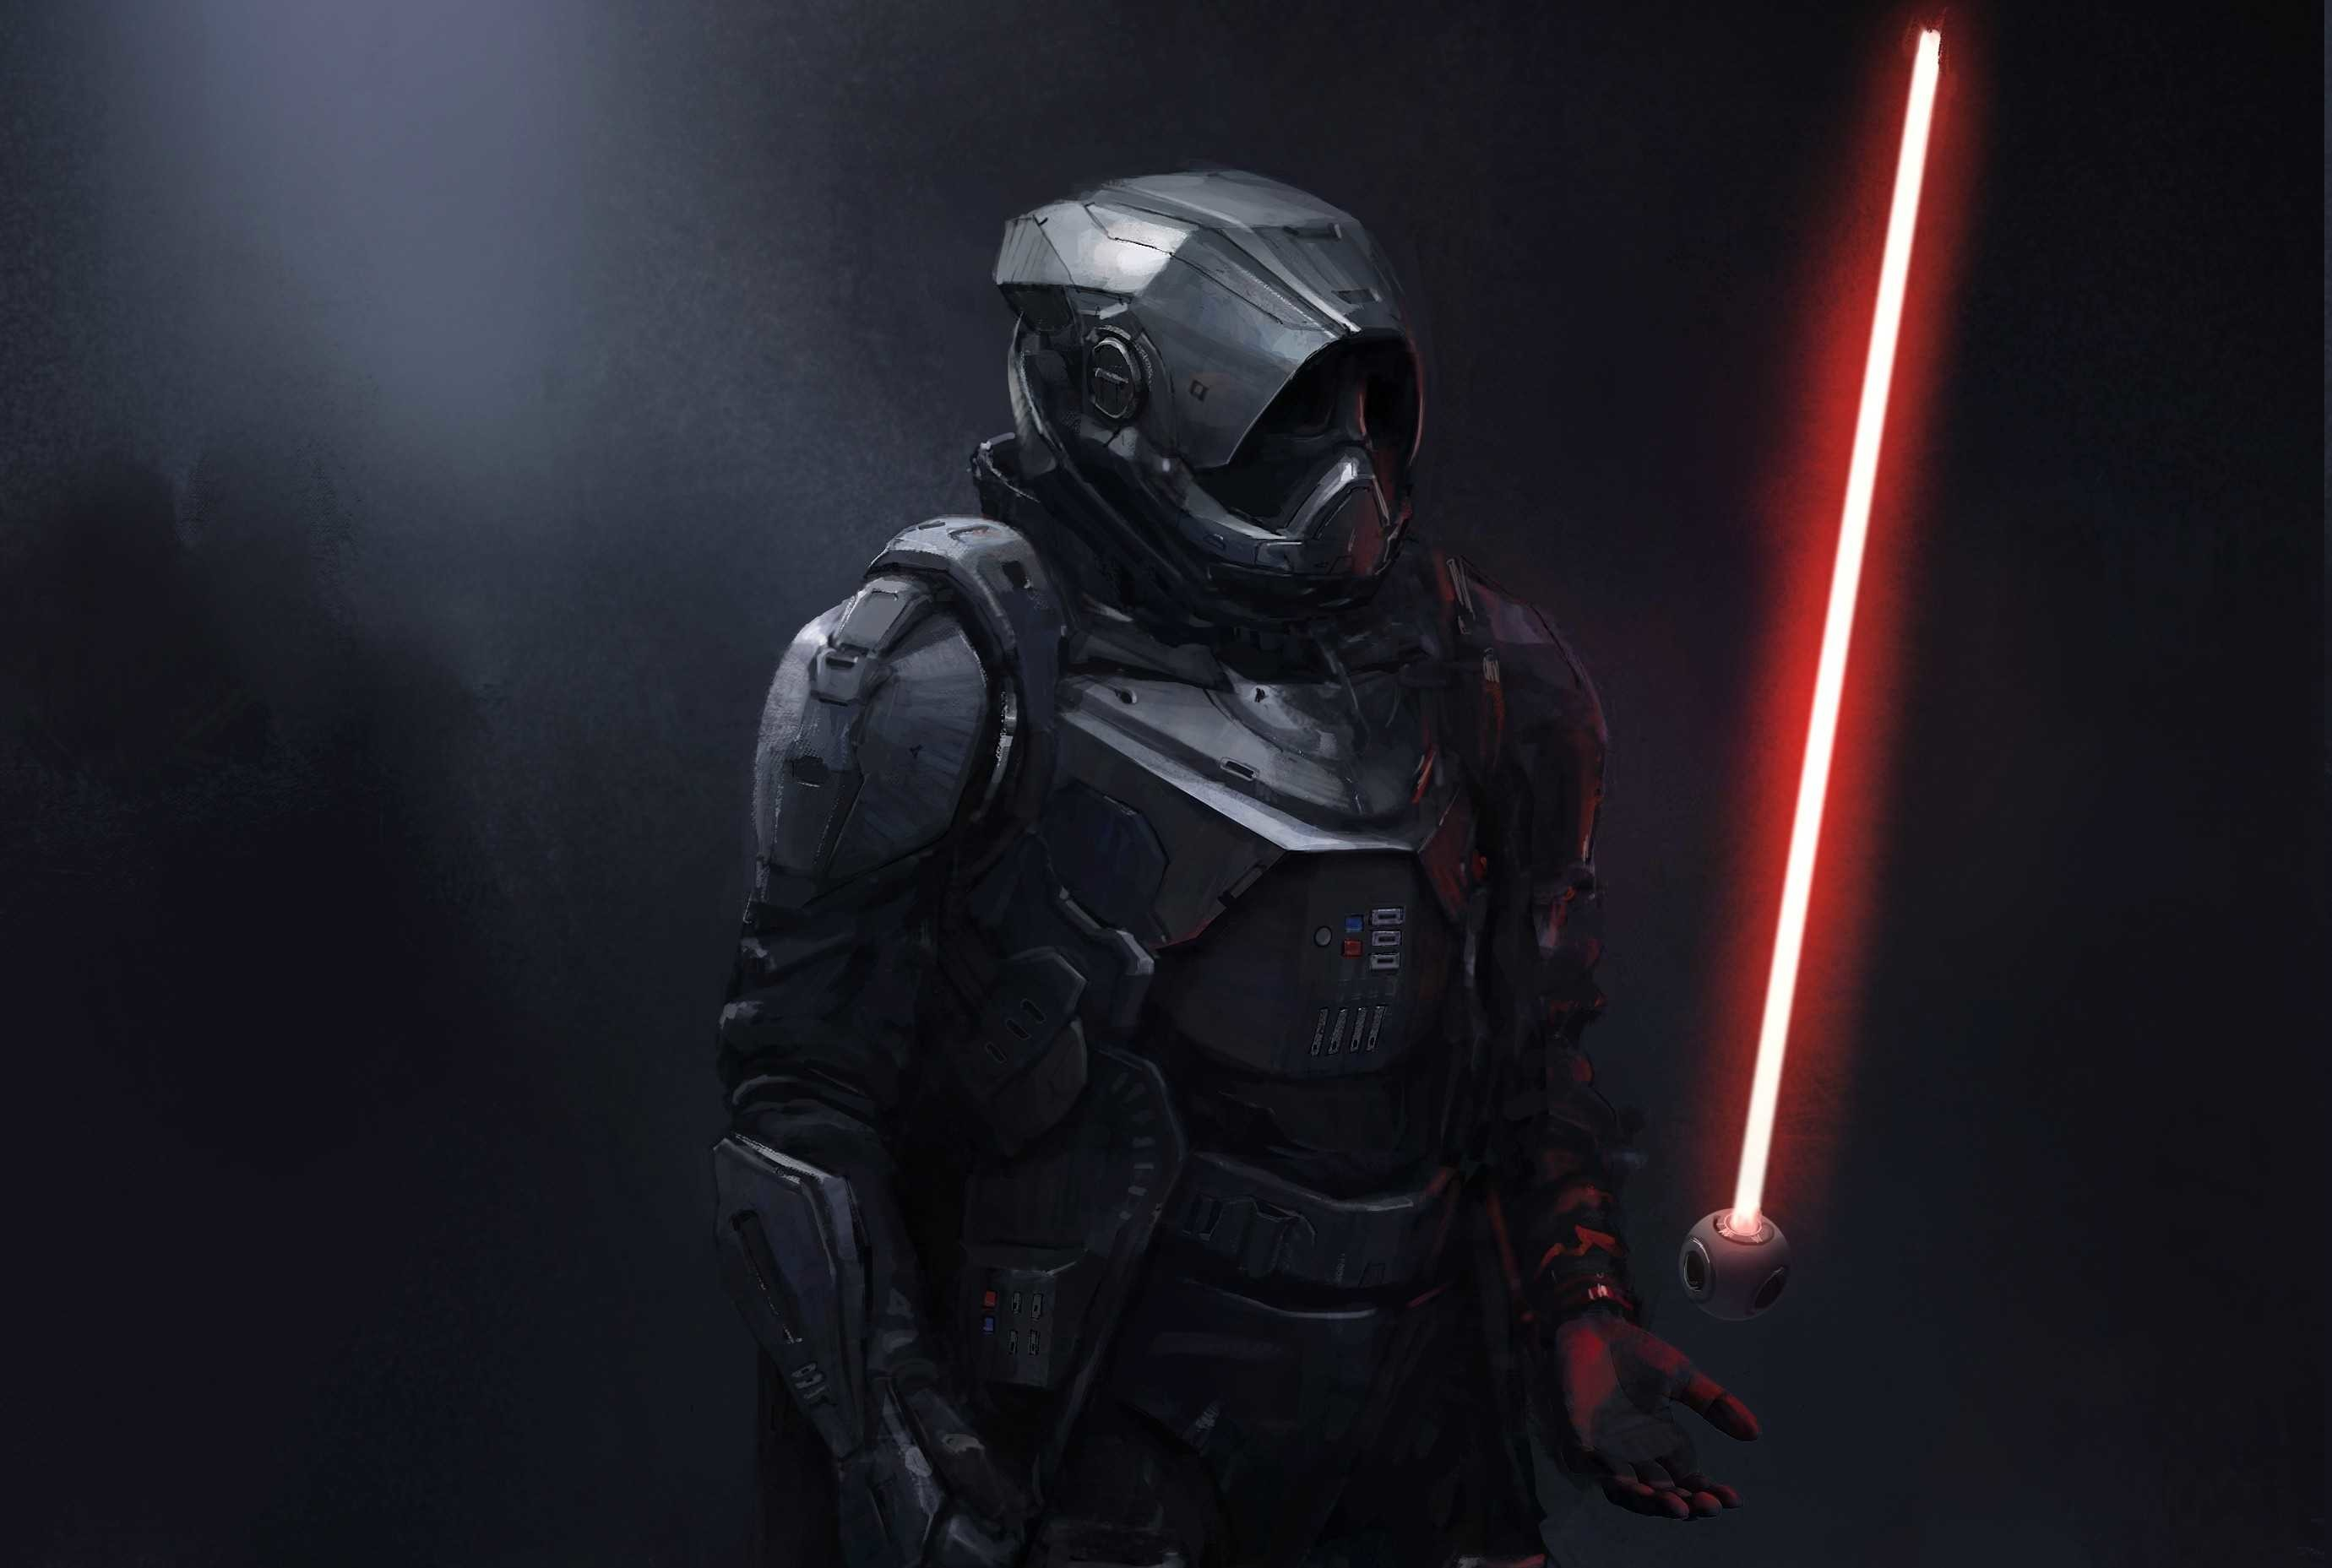 2761x1857 Res: 1920x1200, Star Wars Sith Wallpapers Picture For Free Wallpaper.  1920x1200 Star ...